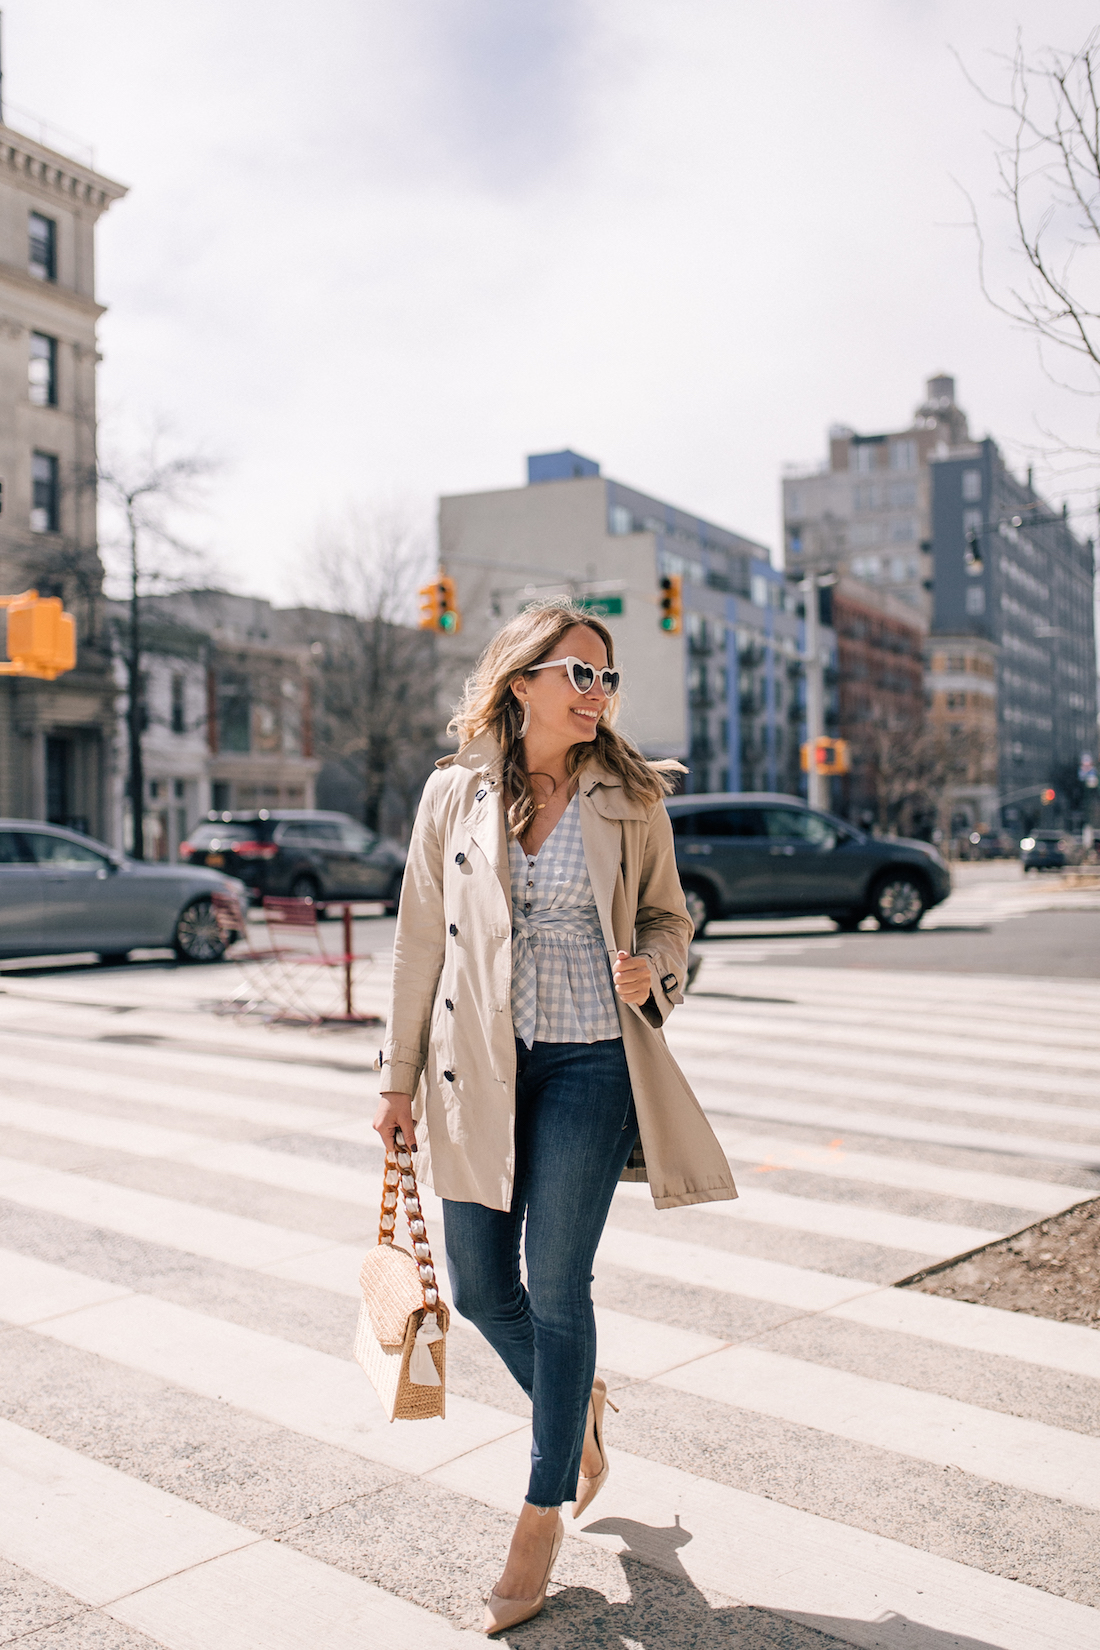 Grace Atwood's Outfit Details: Burberry Trench // Anthropologie Gingham Top // Good American Jeans // Manolo Blahnik Pumps // Pamela Munson Bag // Free People Sunglasses // Rachel Comey Earrings